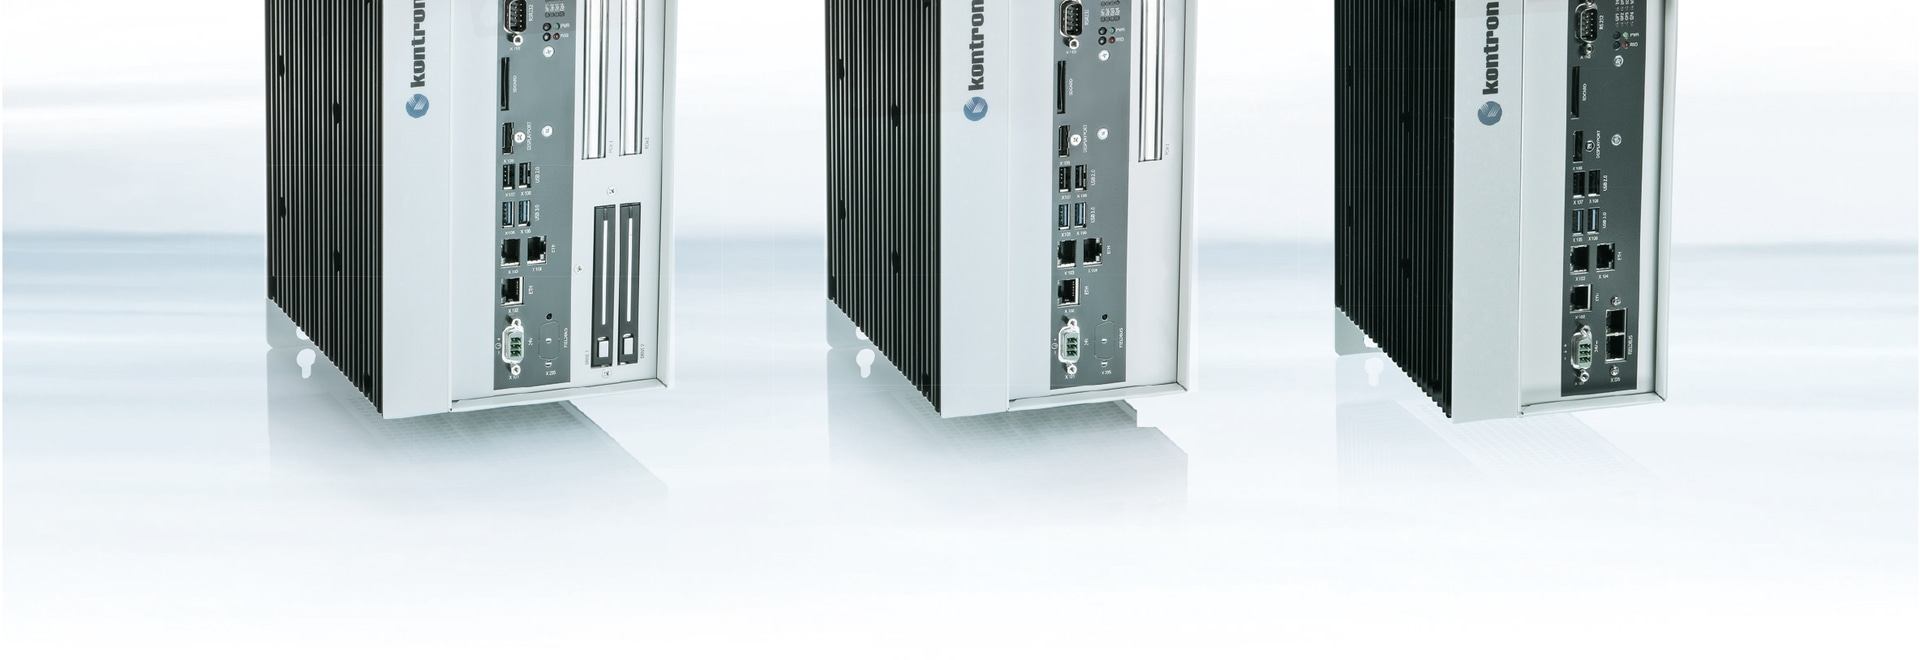 Kontron KBox C-102 Series: High Performance, Scalability, and Maintenance-Free Design